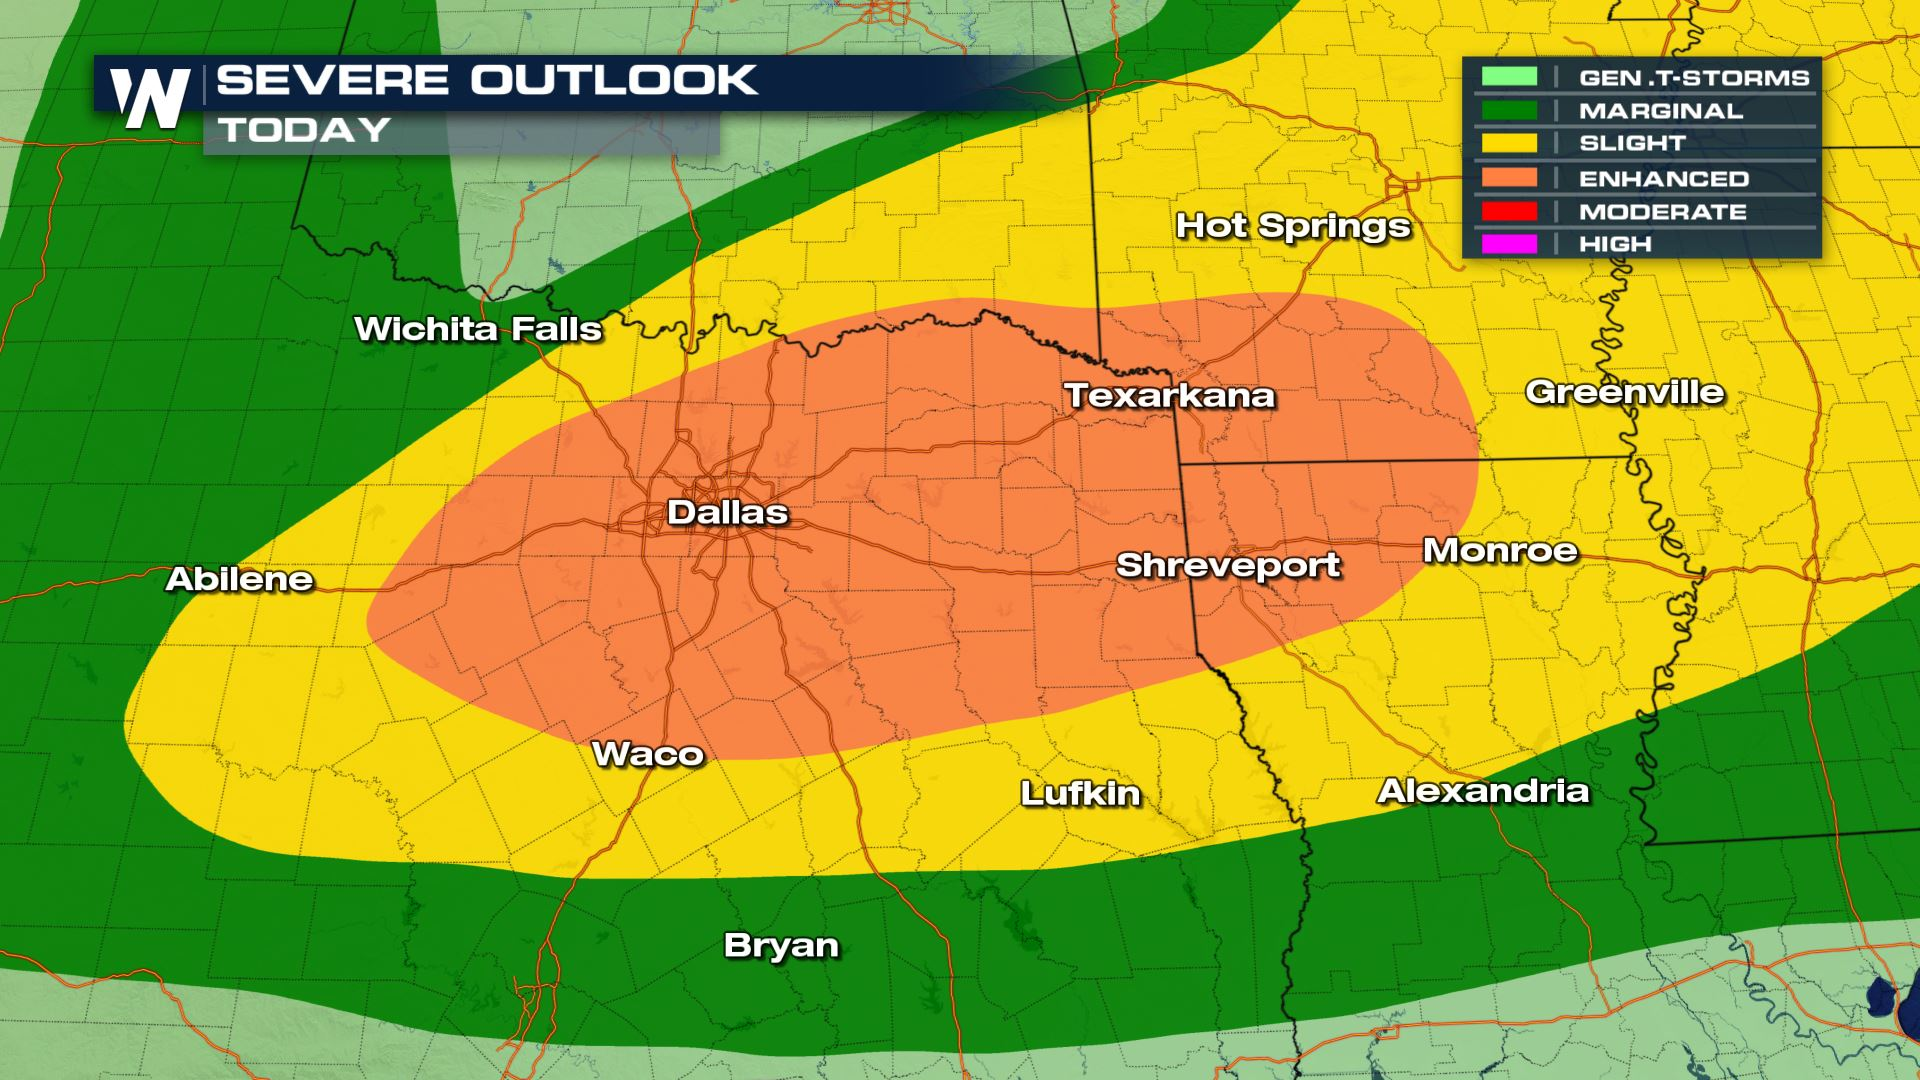 hight resolution of a large area of the nation is under a risk of severe storms from the high plains to the mississippi and tennessee valleys the area that could see numerous